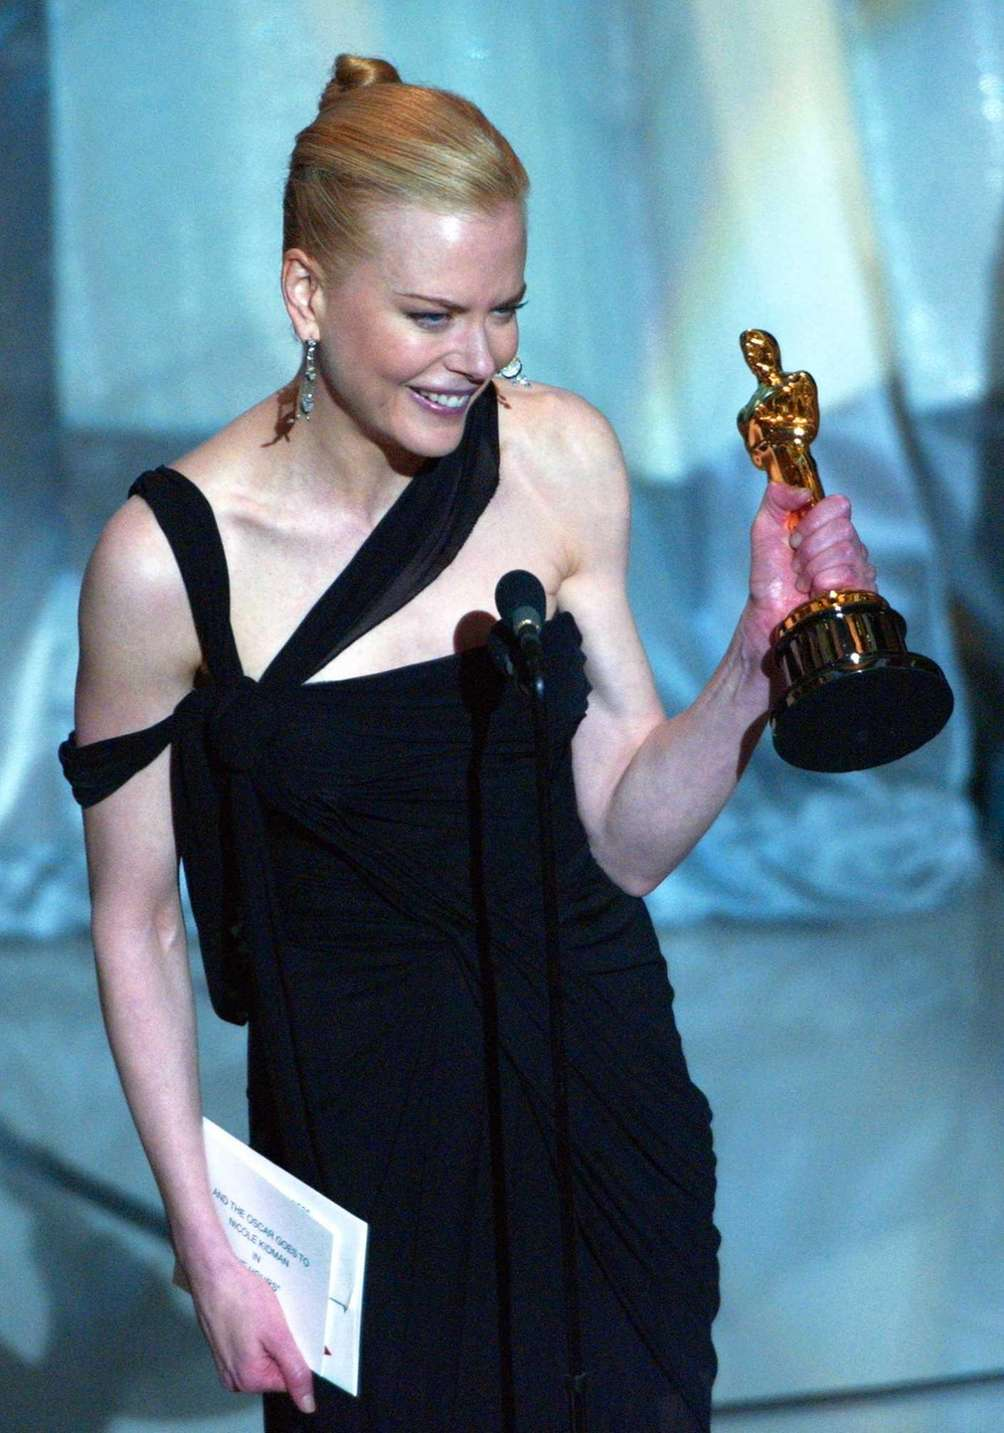 Actor Nicole Kidman, holding the Oscar statuette she